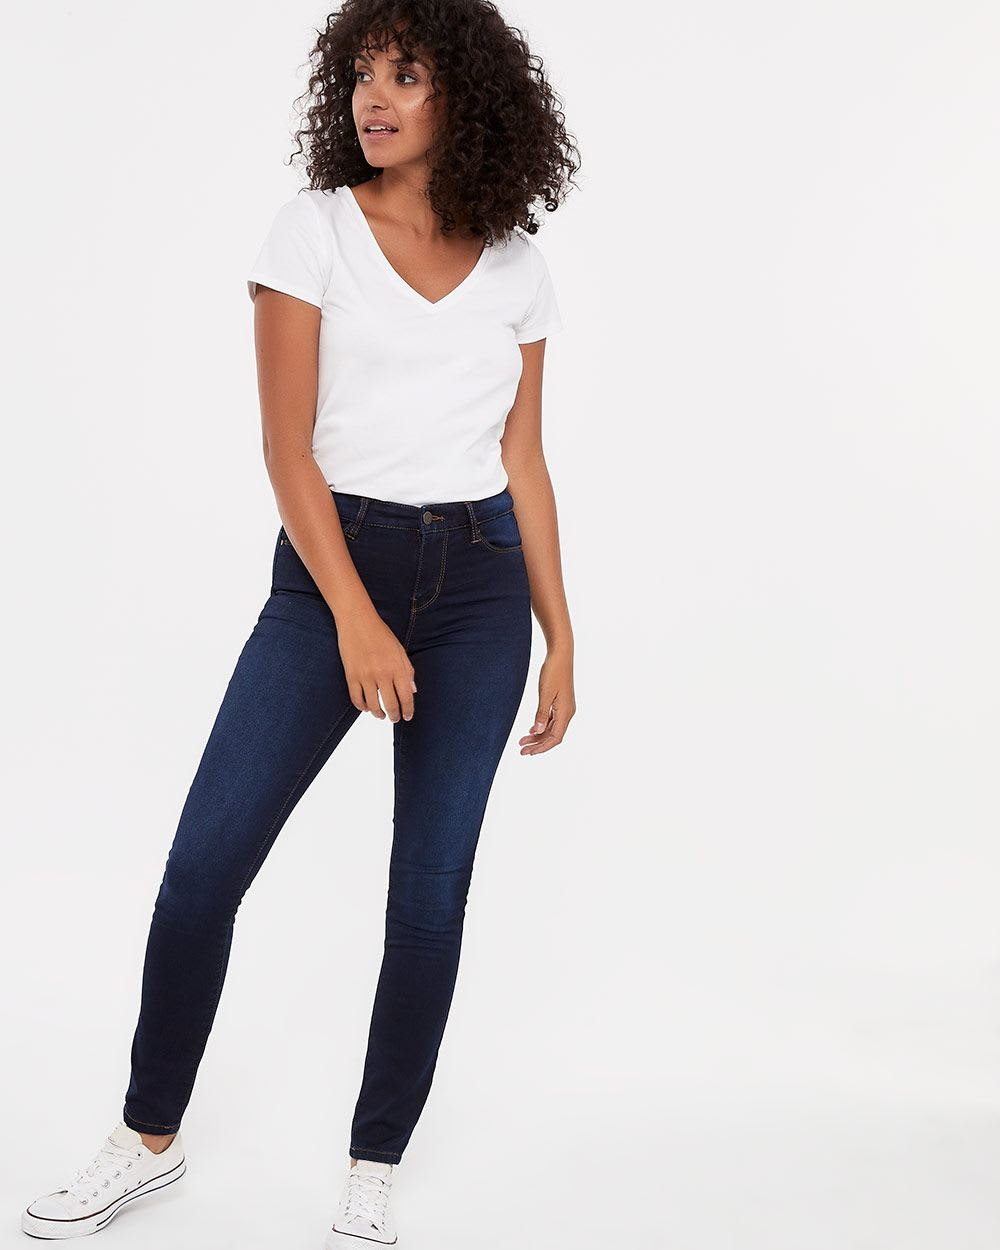 The Signature Soft Dark Wash Skinny Jeans